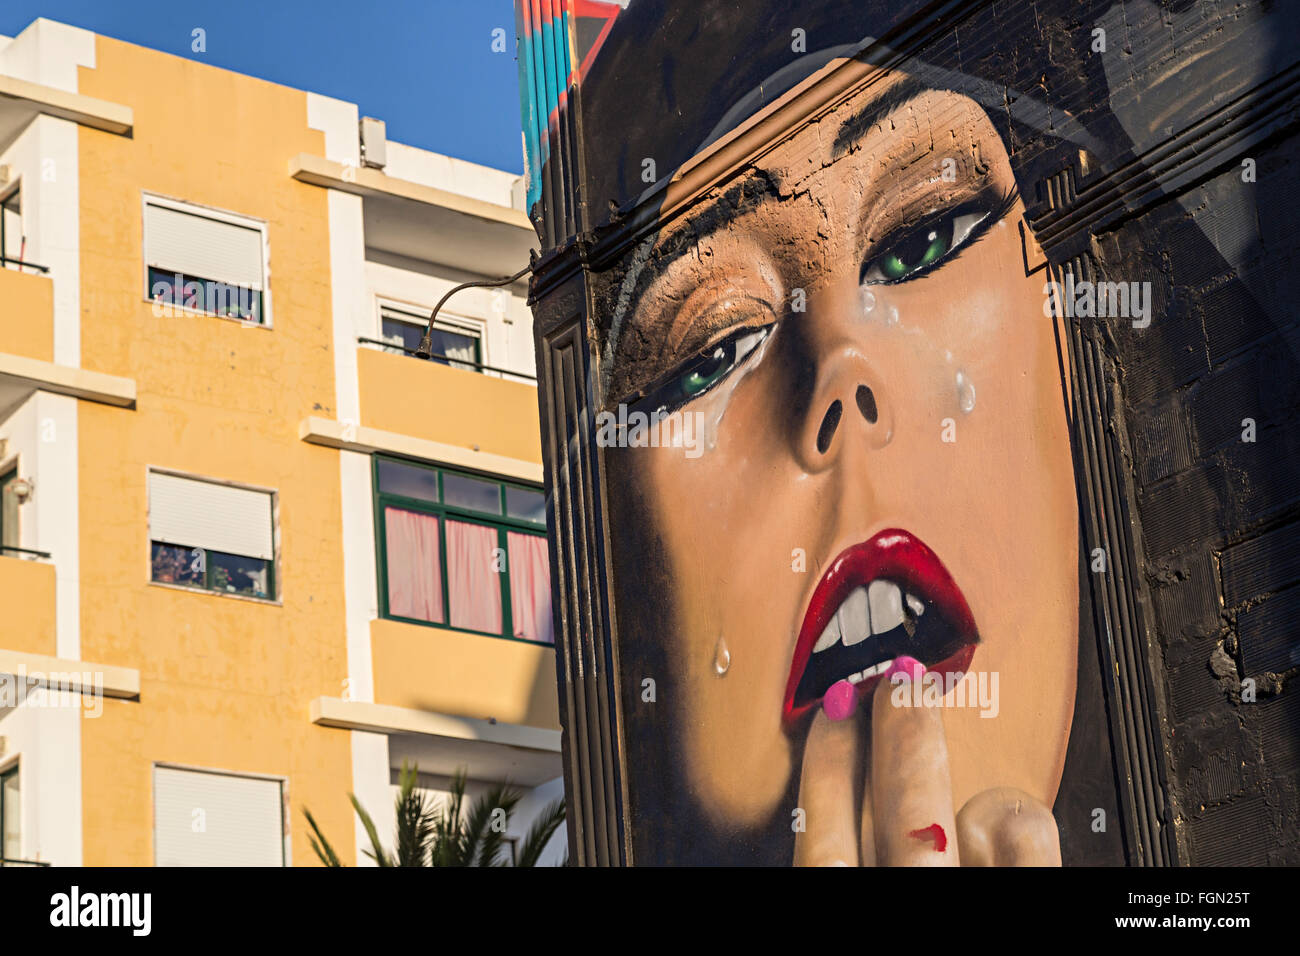 Woman's face painted on old church building, Olhao, Algarve, Portugal - Stock Image